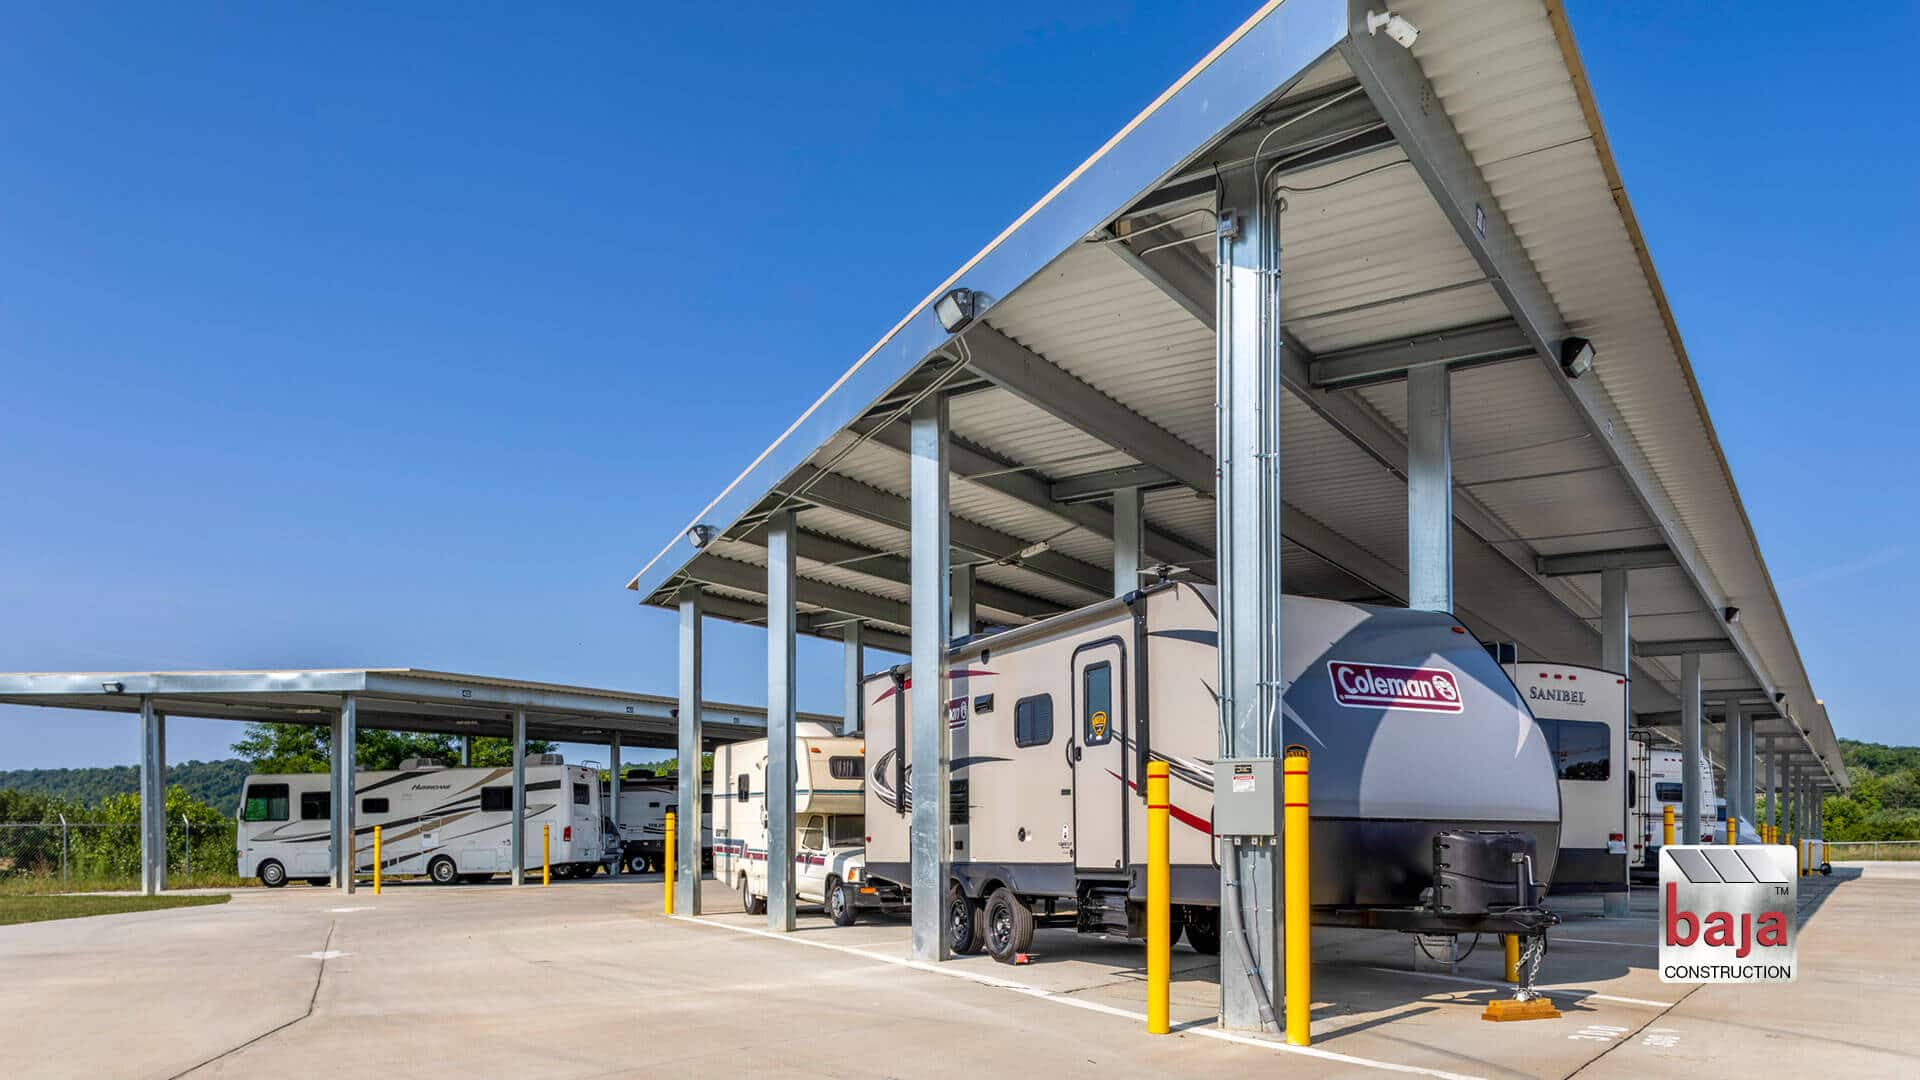 Wilder Self-Storage utilizes Baja Carports Standard Covered RV Canopies to Cover 88 Tenant Spaces